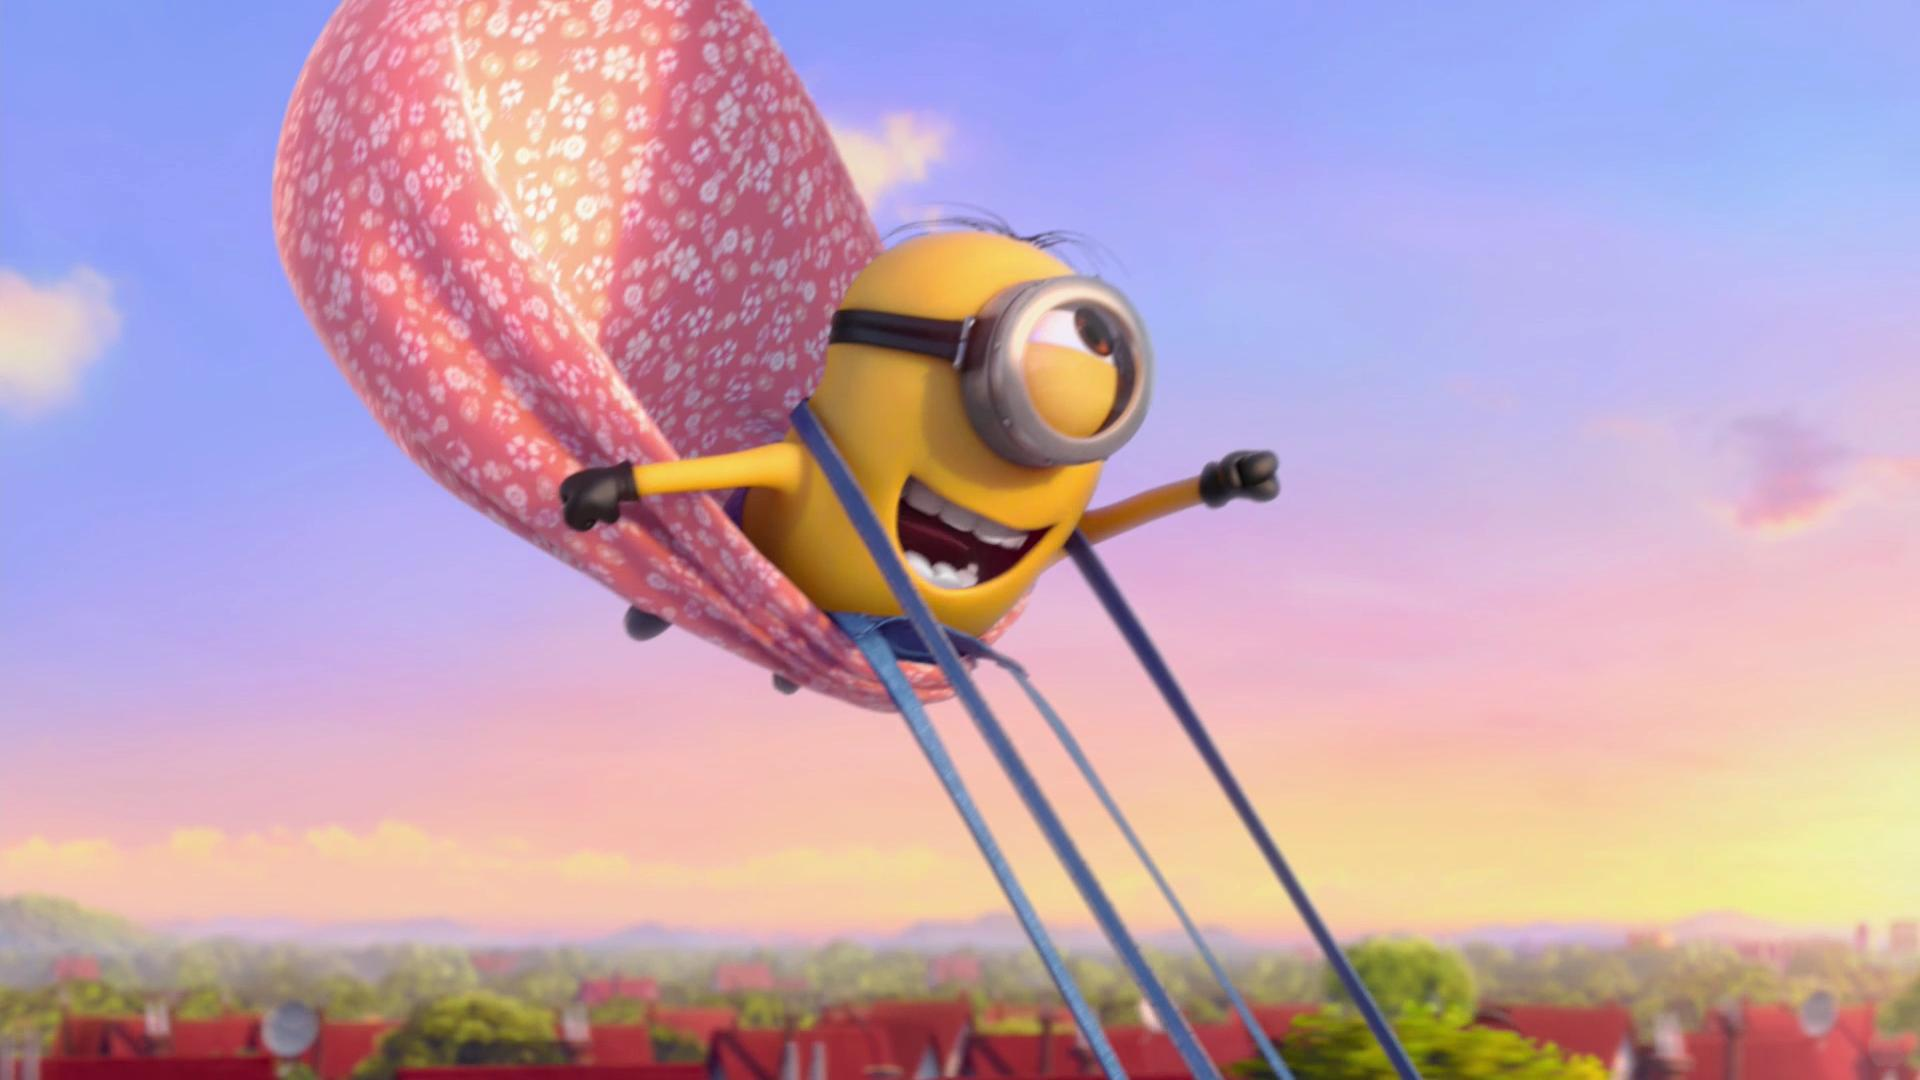 despicable-me-minions-spicable-Me-Movies-HD-wallpaper-wpc9004211